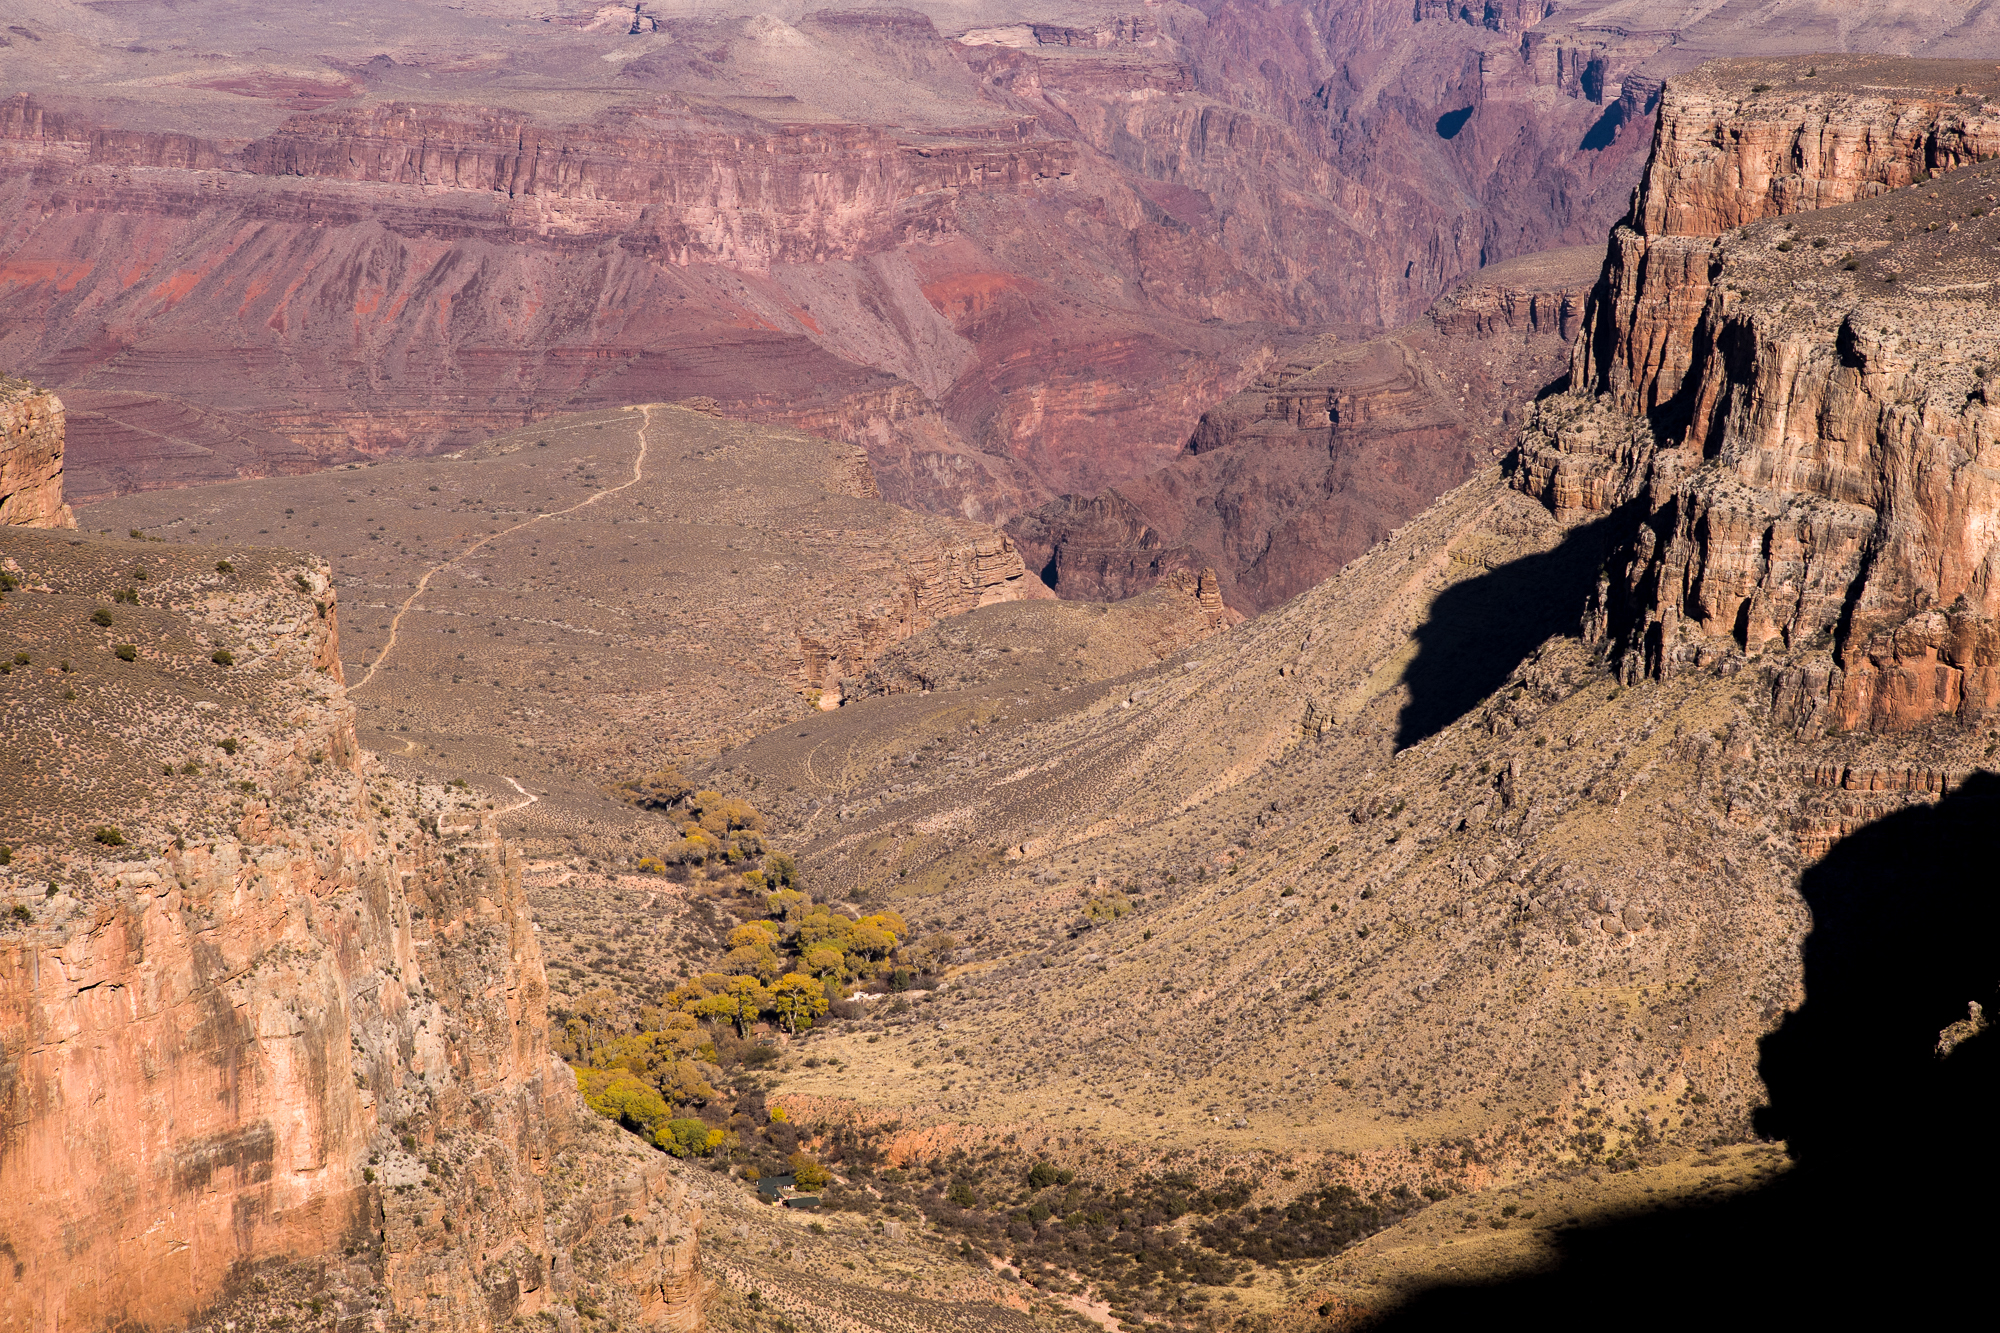 Looking down on Indian Garden campground and the trail to Plateau Point